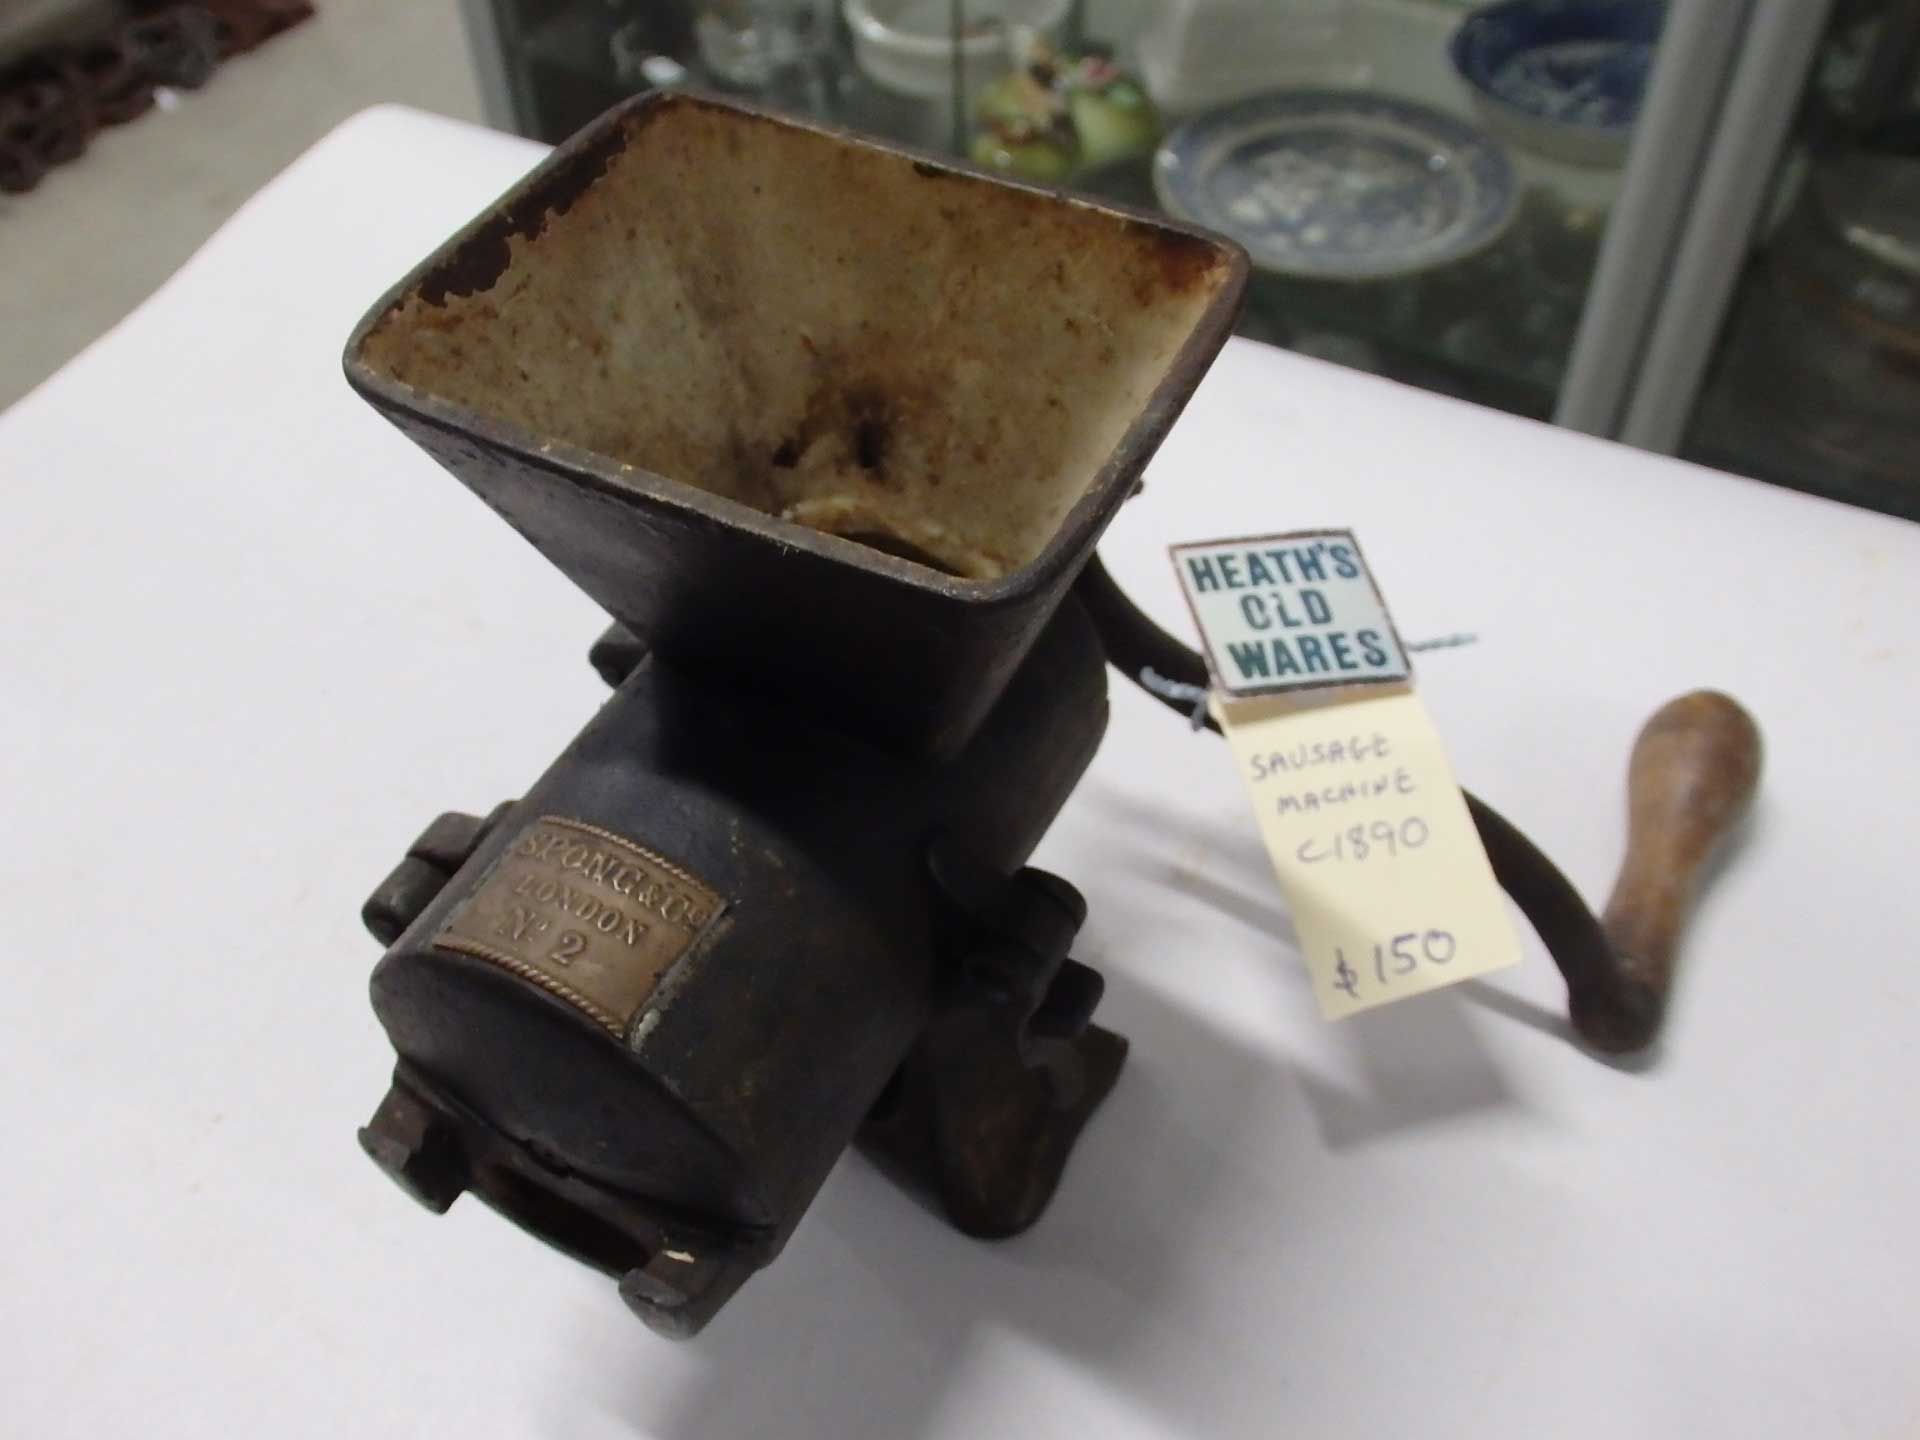 Circa 1890 Spong & Co. London sausage maker $150 for sale at Heaths Old Wares, Collectables, Antiques & Industrial Antiques, 19-21 Broadway, Burringbar NSW 2483 Ph 0266771181 open 7 days